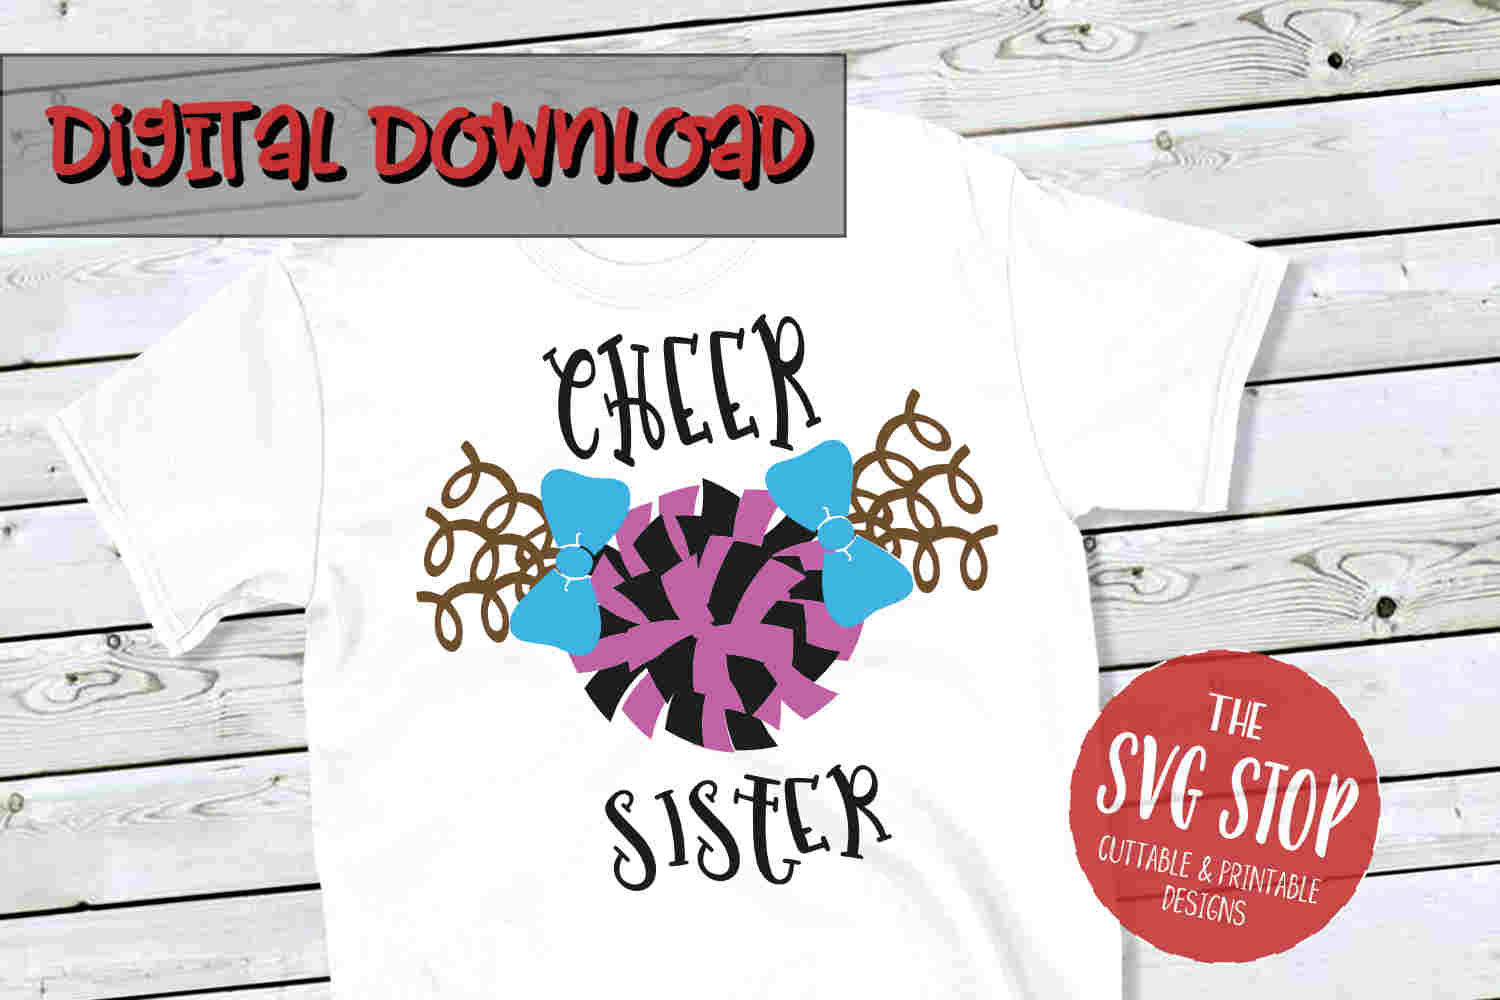 Cheer Sister -SVG, PNG, DXF example image 1